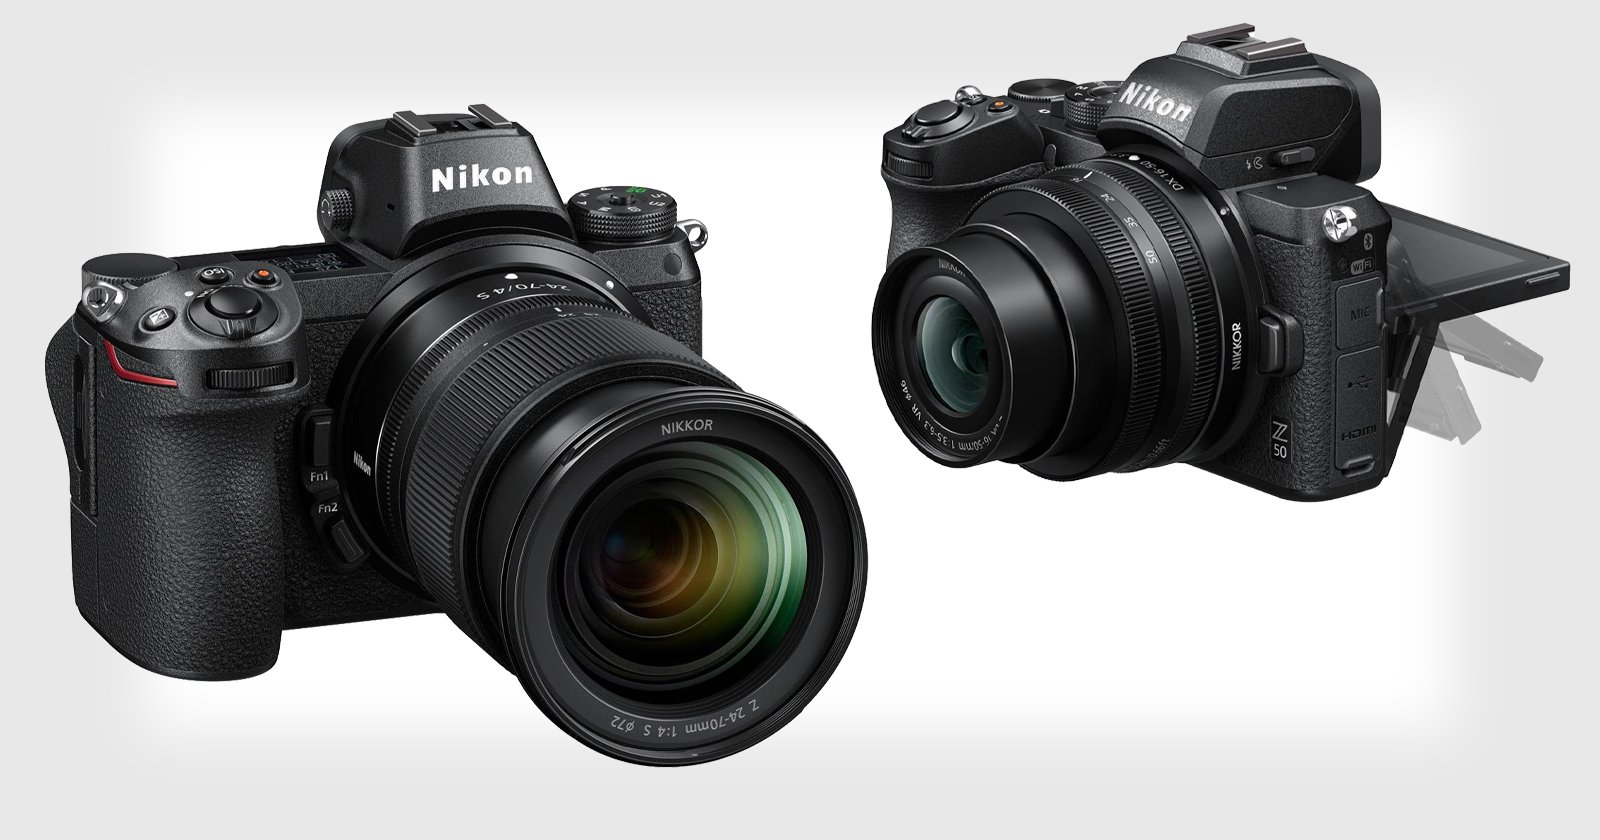 Nikon to Release 'Z5' and 'Z30' Entry-Level Mirrorless Cameras in 2020: Report